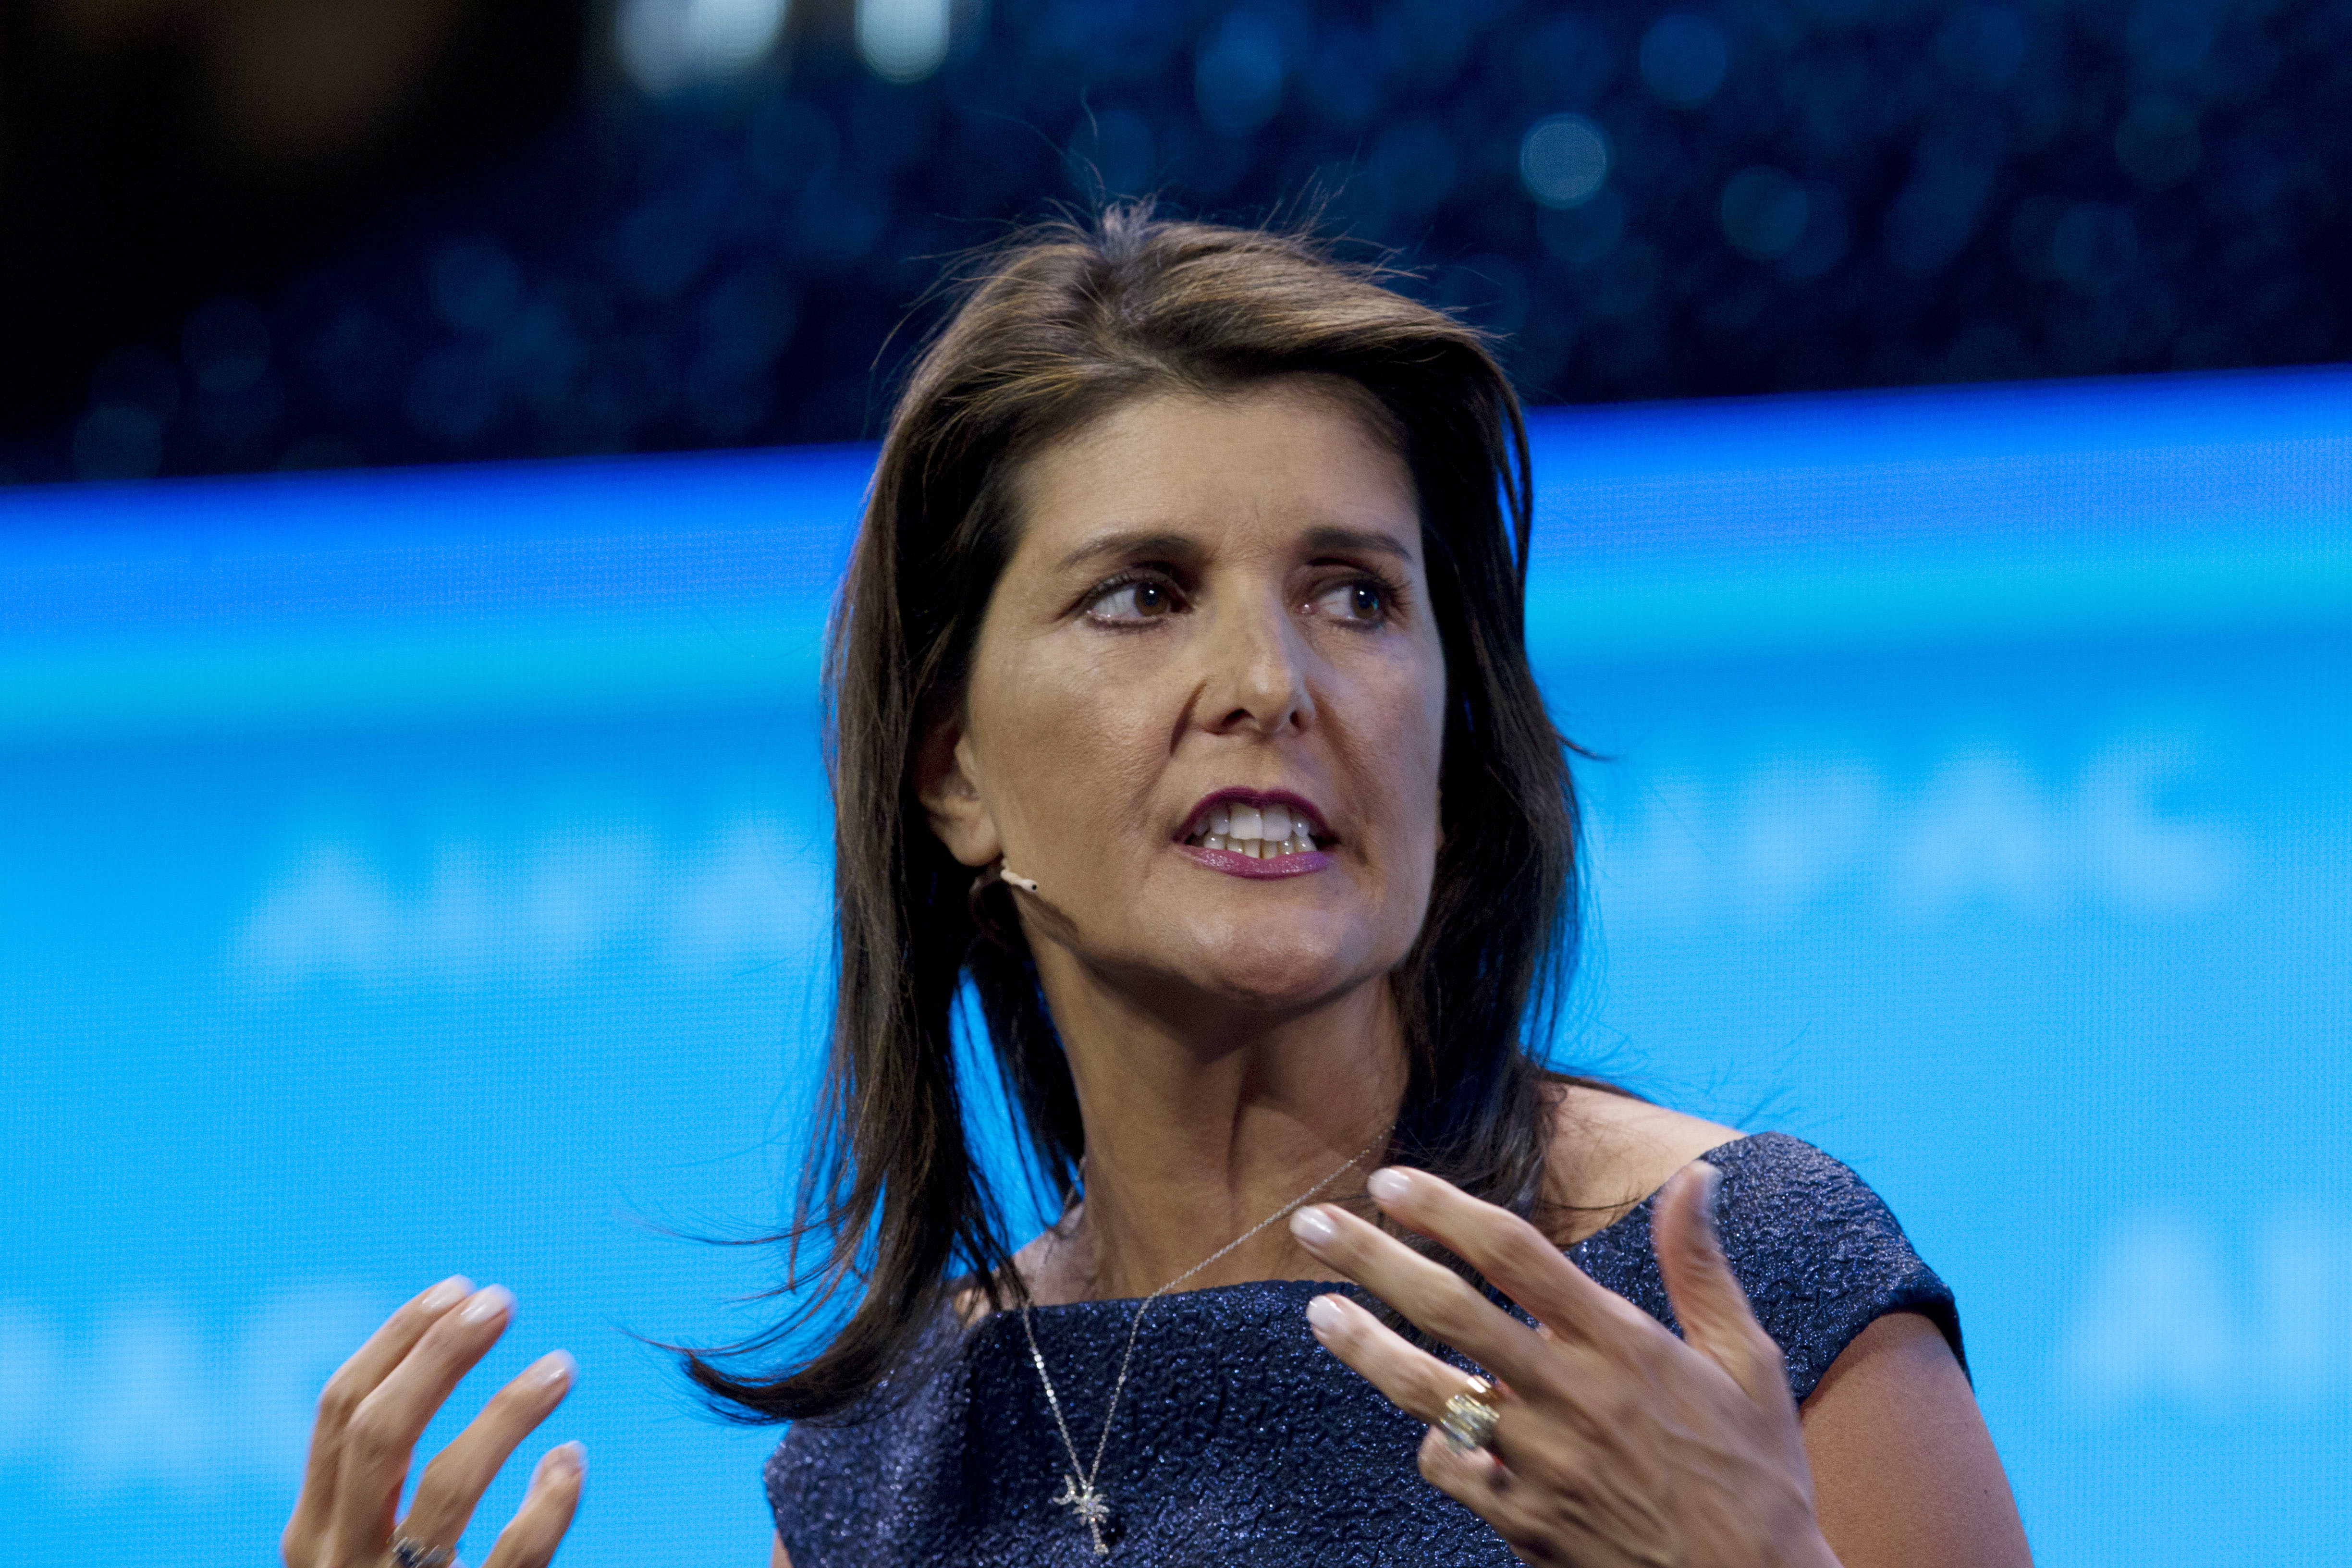 Nikki Haley sent classified info from BlackBerry after losing password